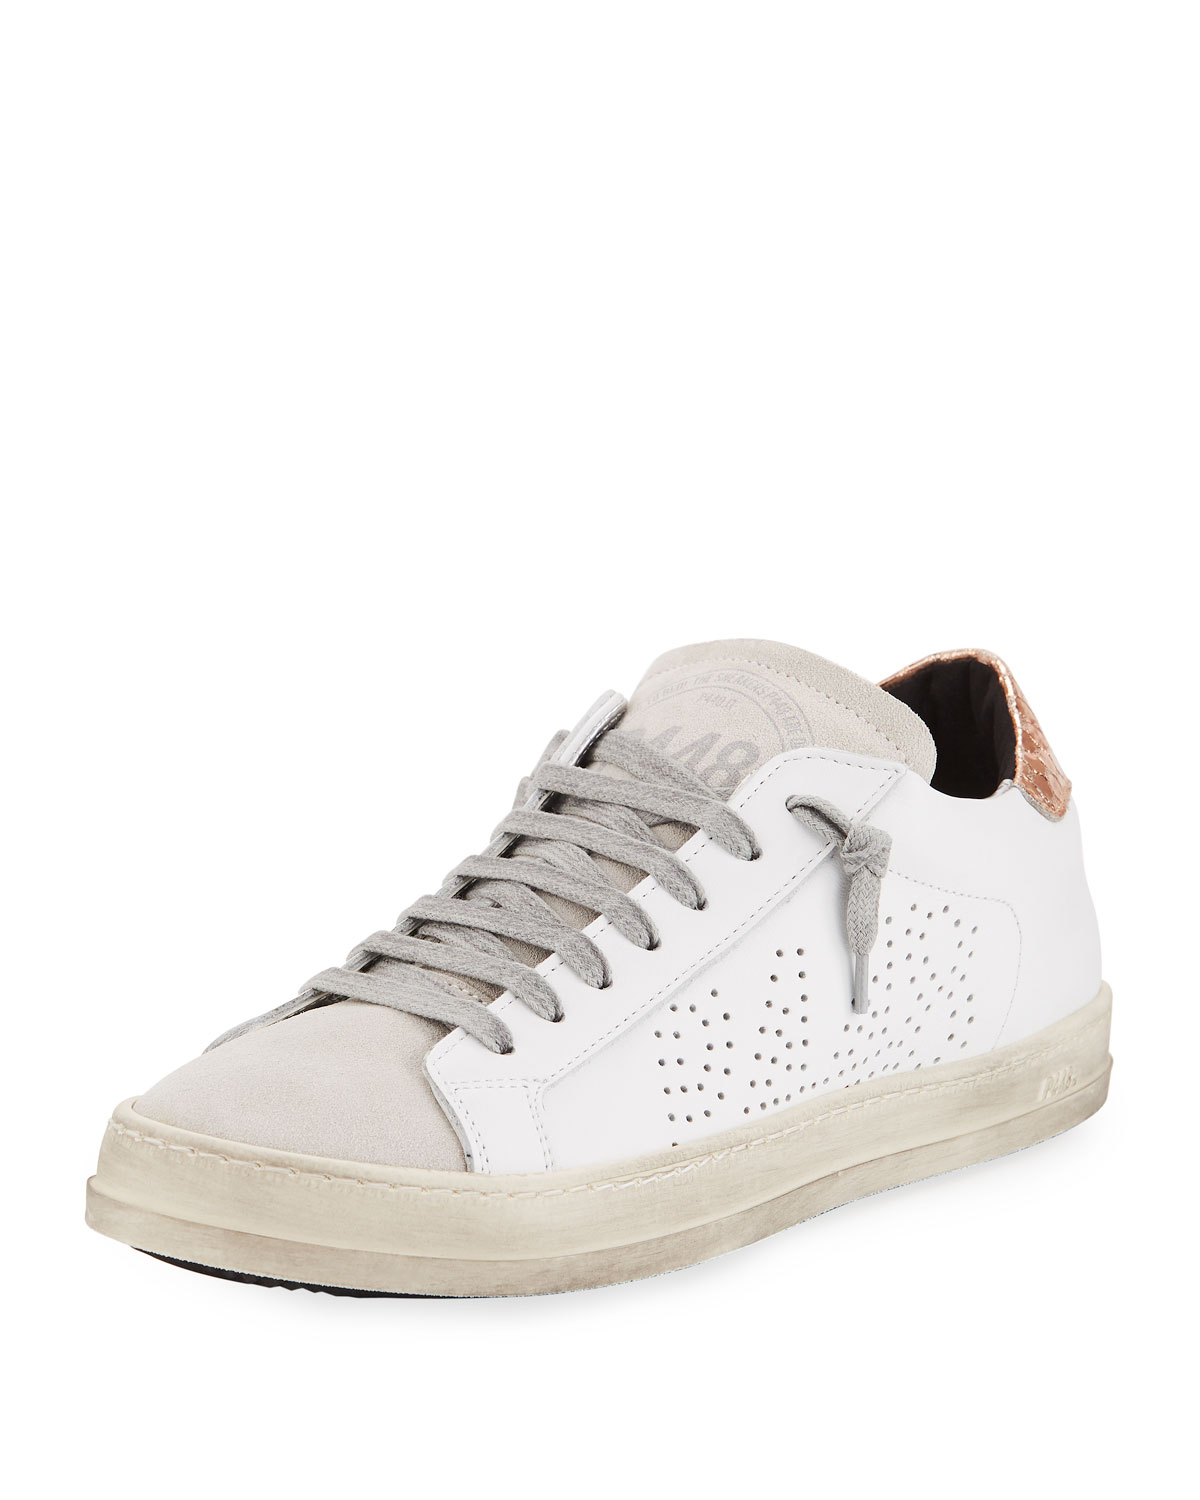 ae01fc56ad P448 John Mixed Leather Low-Top Sneakers